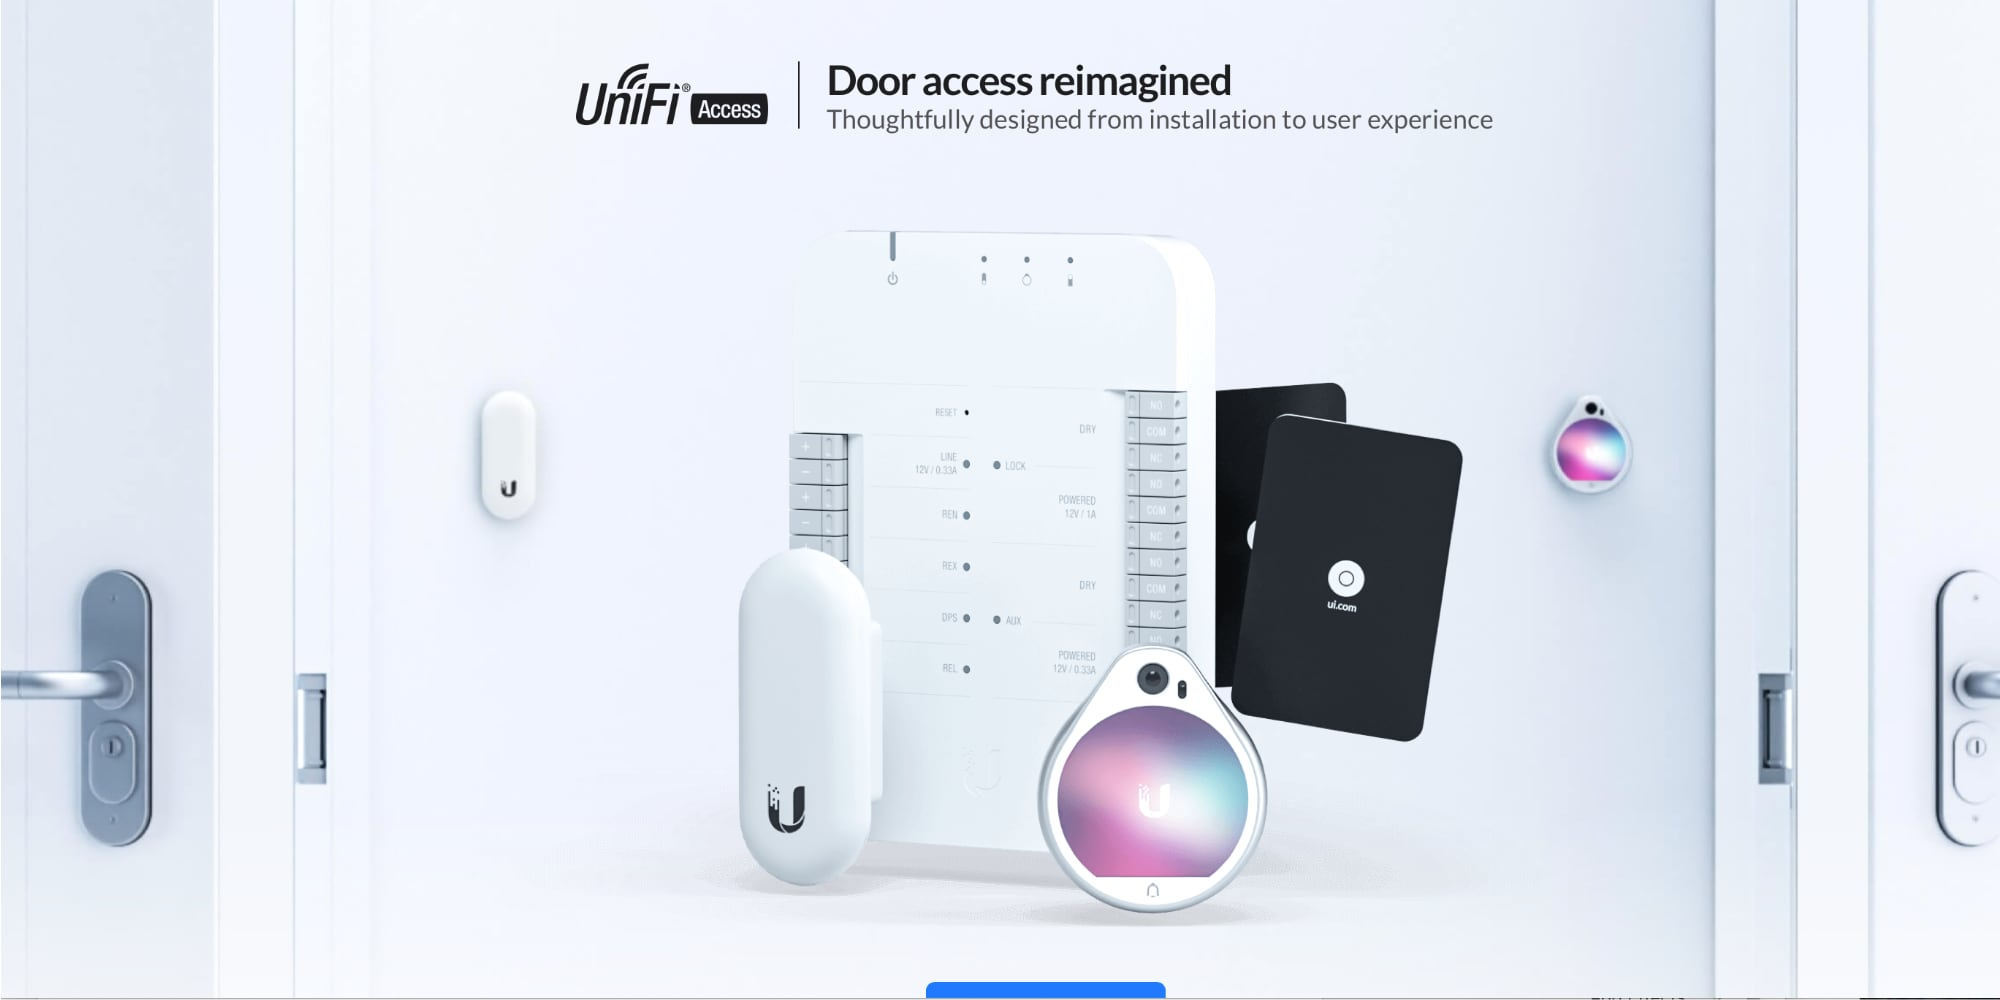 Ubiquiti launches UniFi Access to reimagine door access control